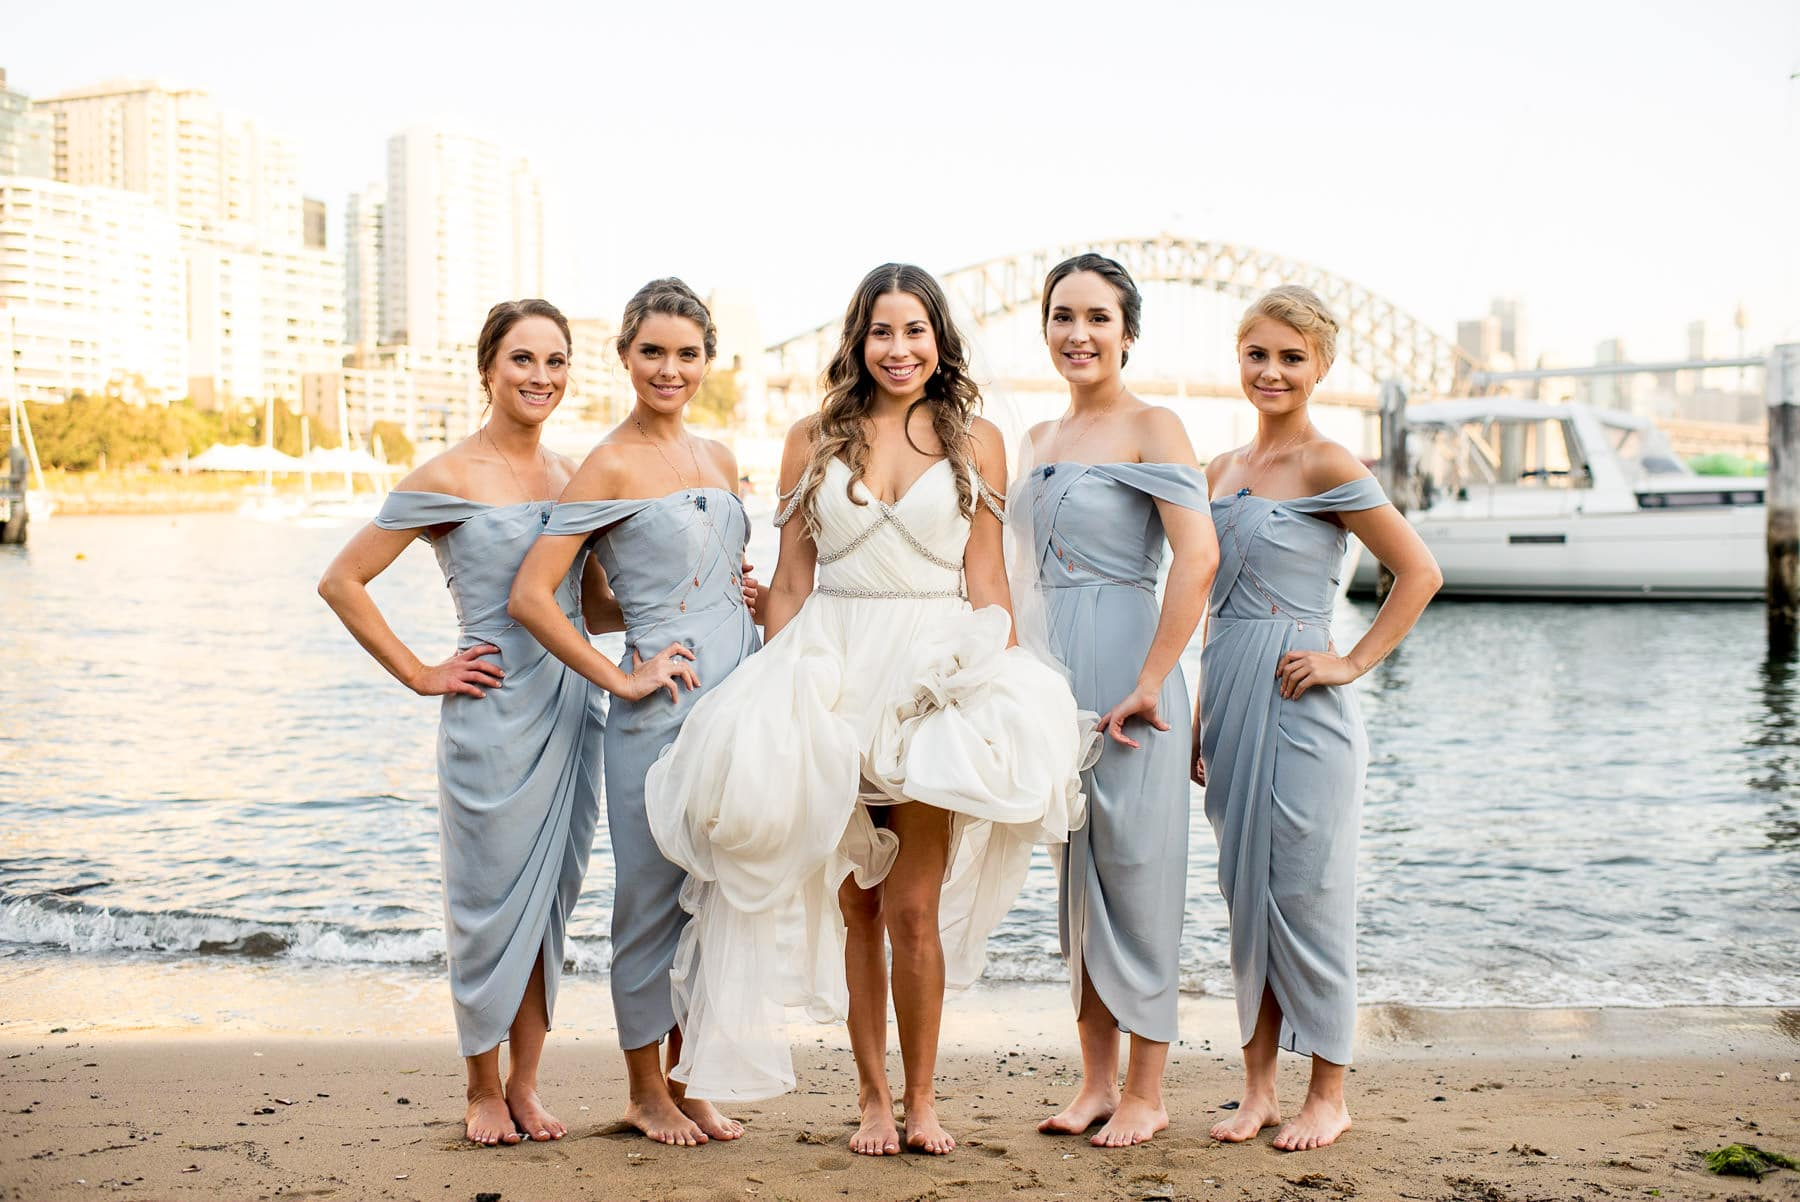 Lavender Bay beach photo bridesmaids